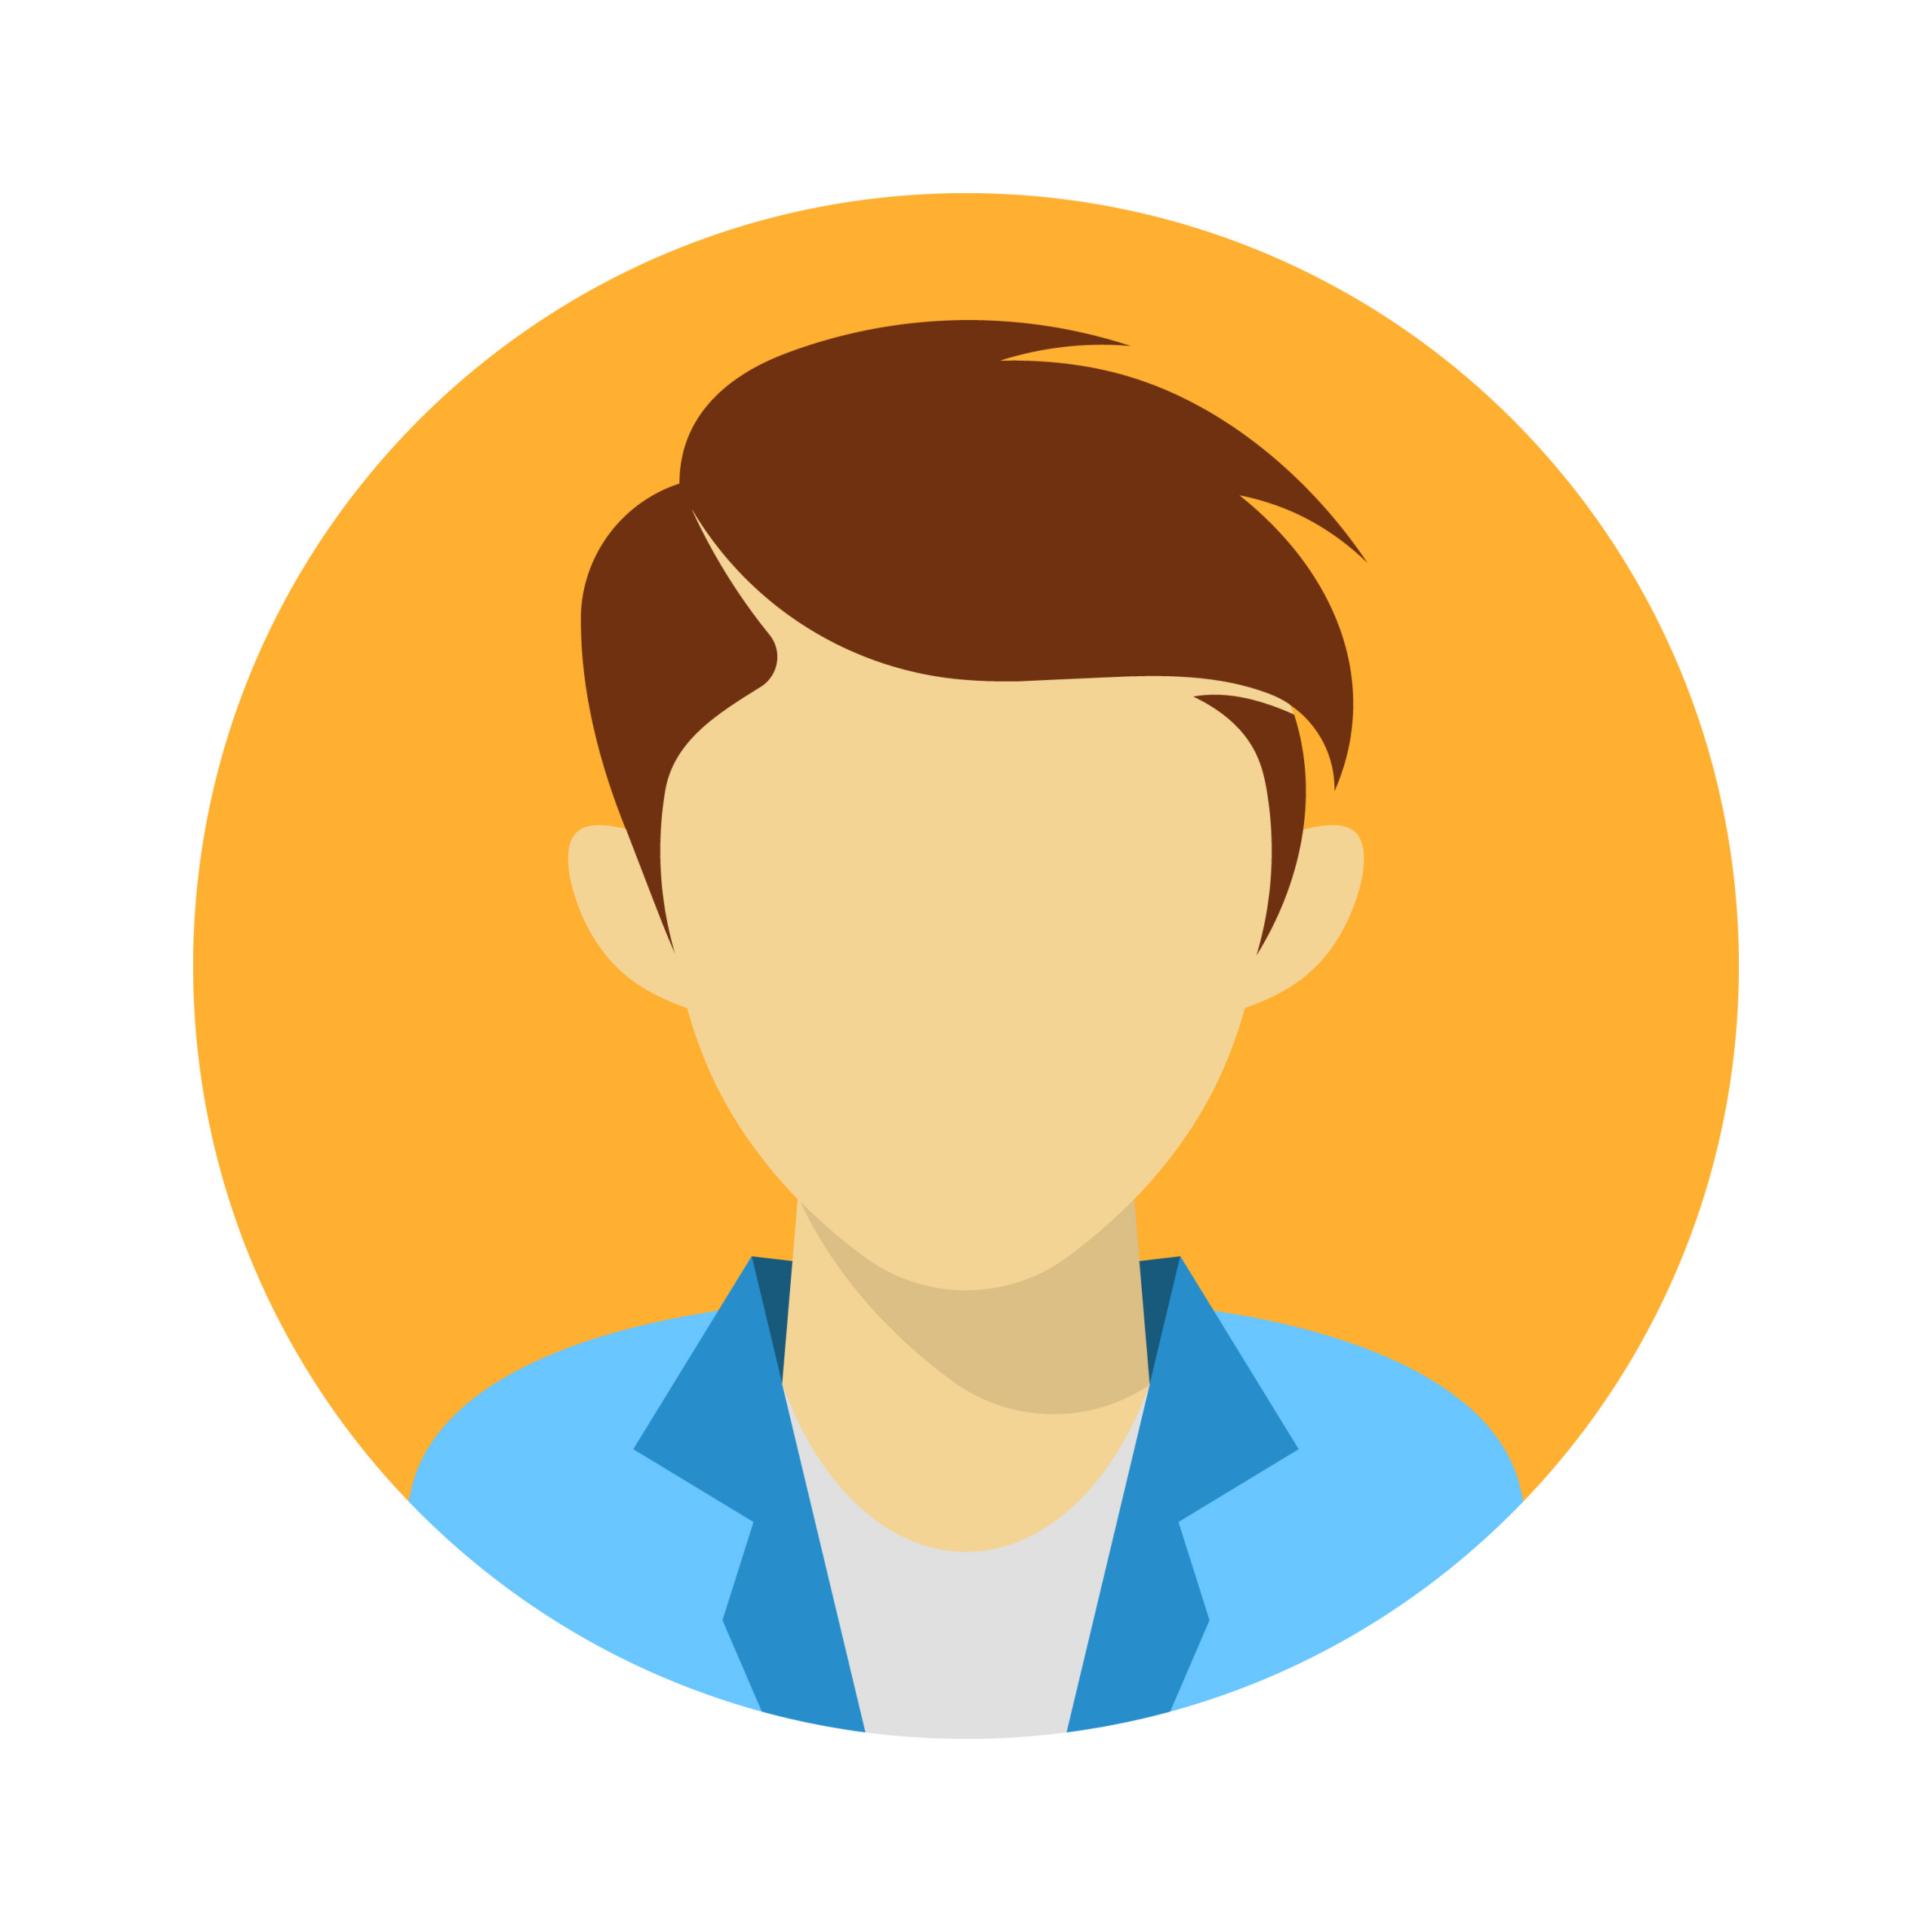 Pngtree—handsome-young-guy-avatar-cartoon_5233396-1-1.png